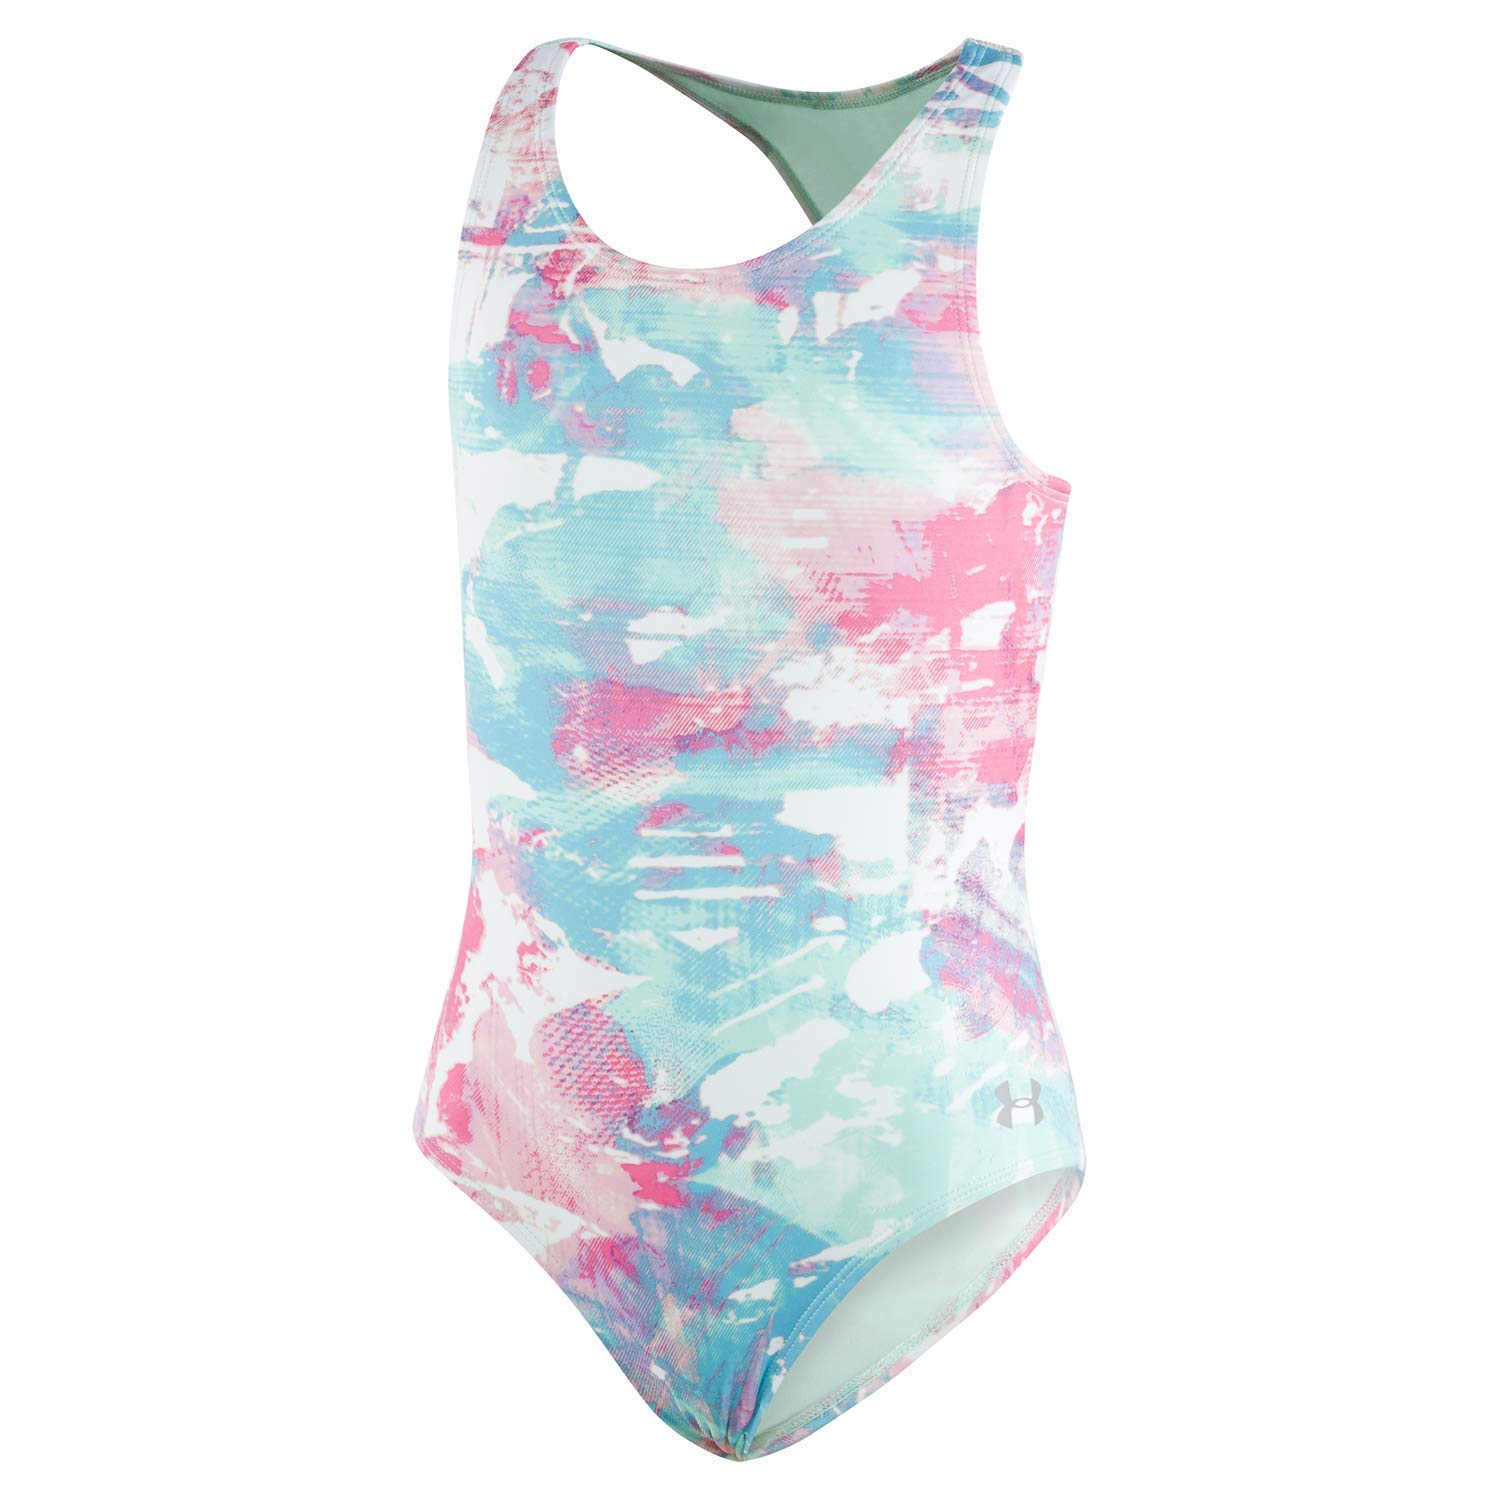 Under Armour Big Girls' One Piece Swimsuit, Crystal-S19, 8